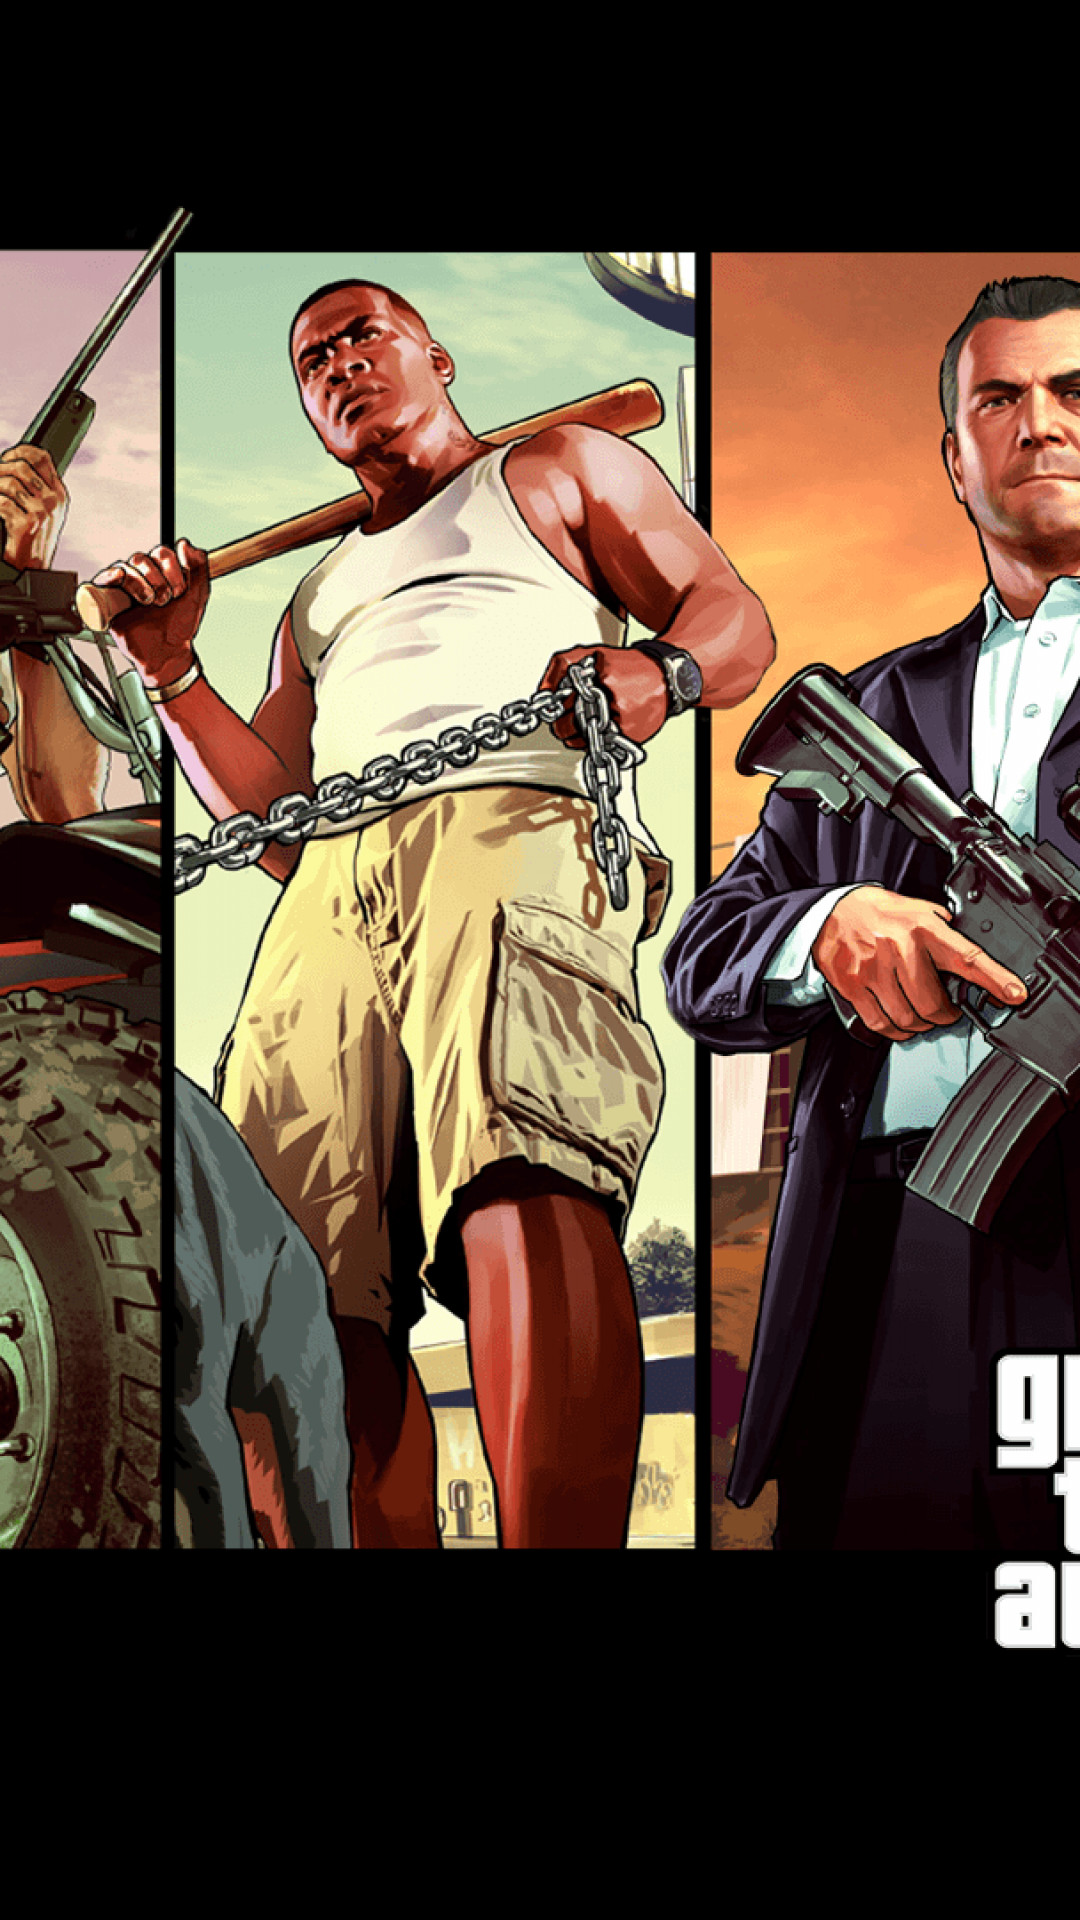 Gta 5 Wallpaper 78 Images